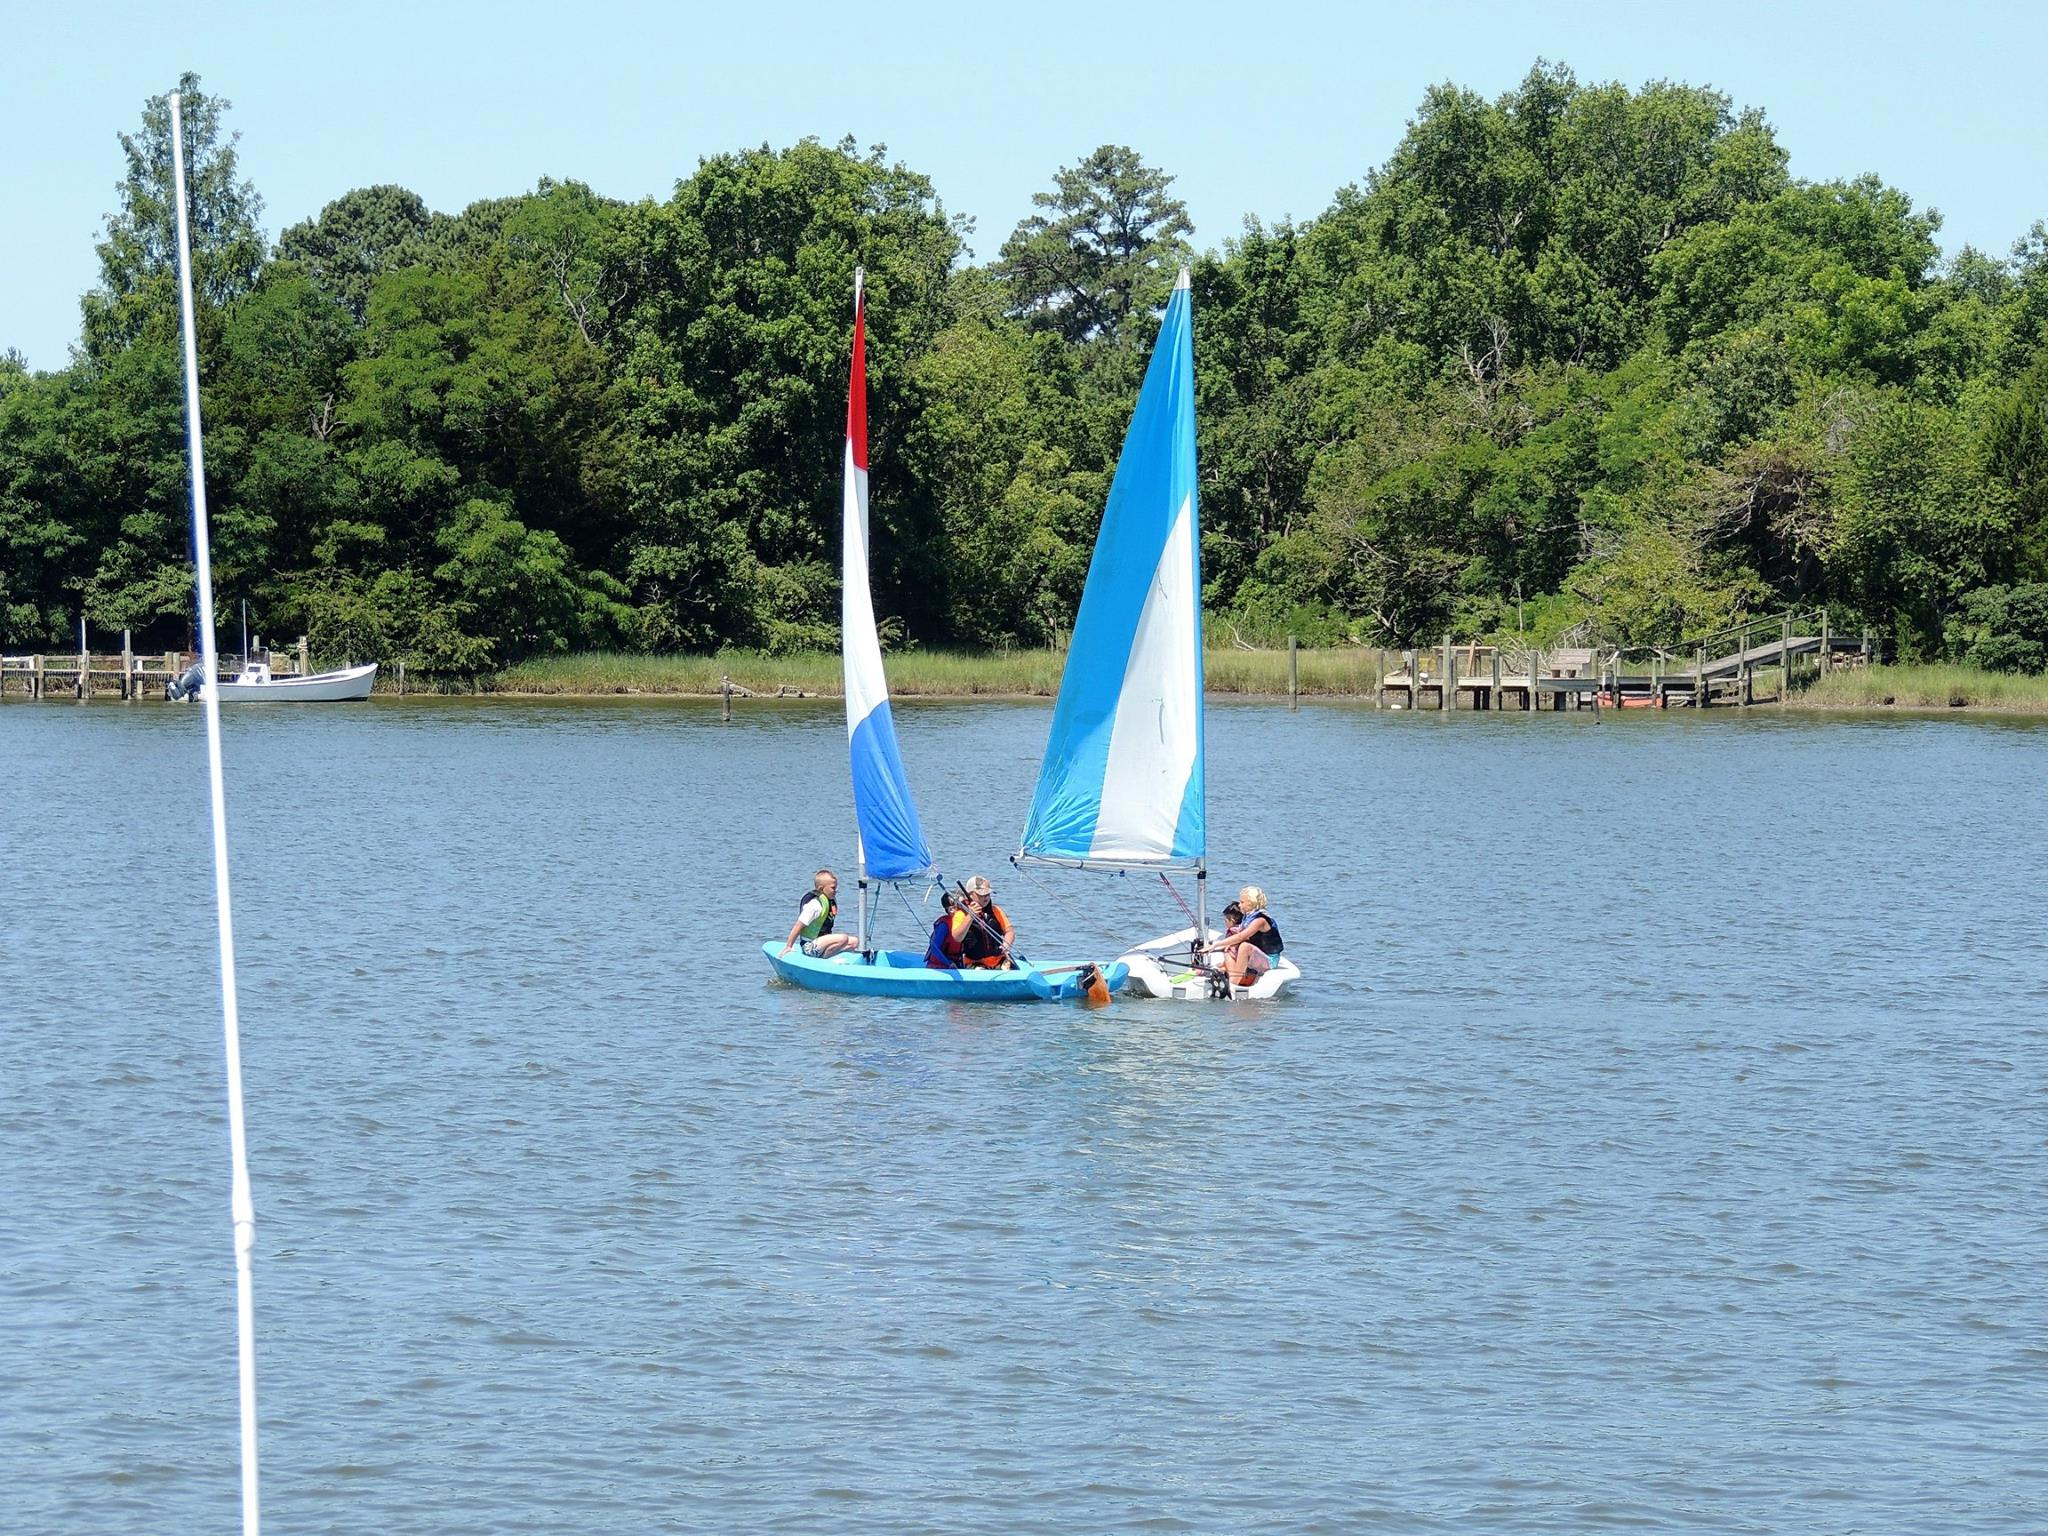 Two sailboats out on the water with people wearing life vests